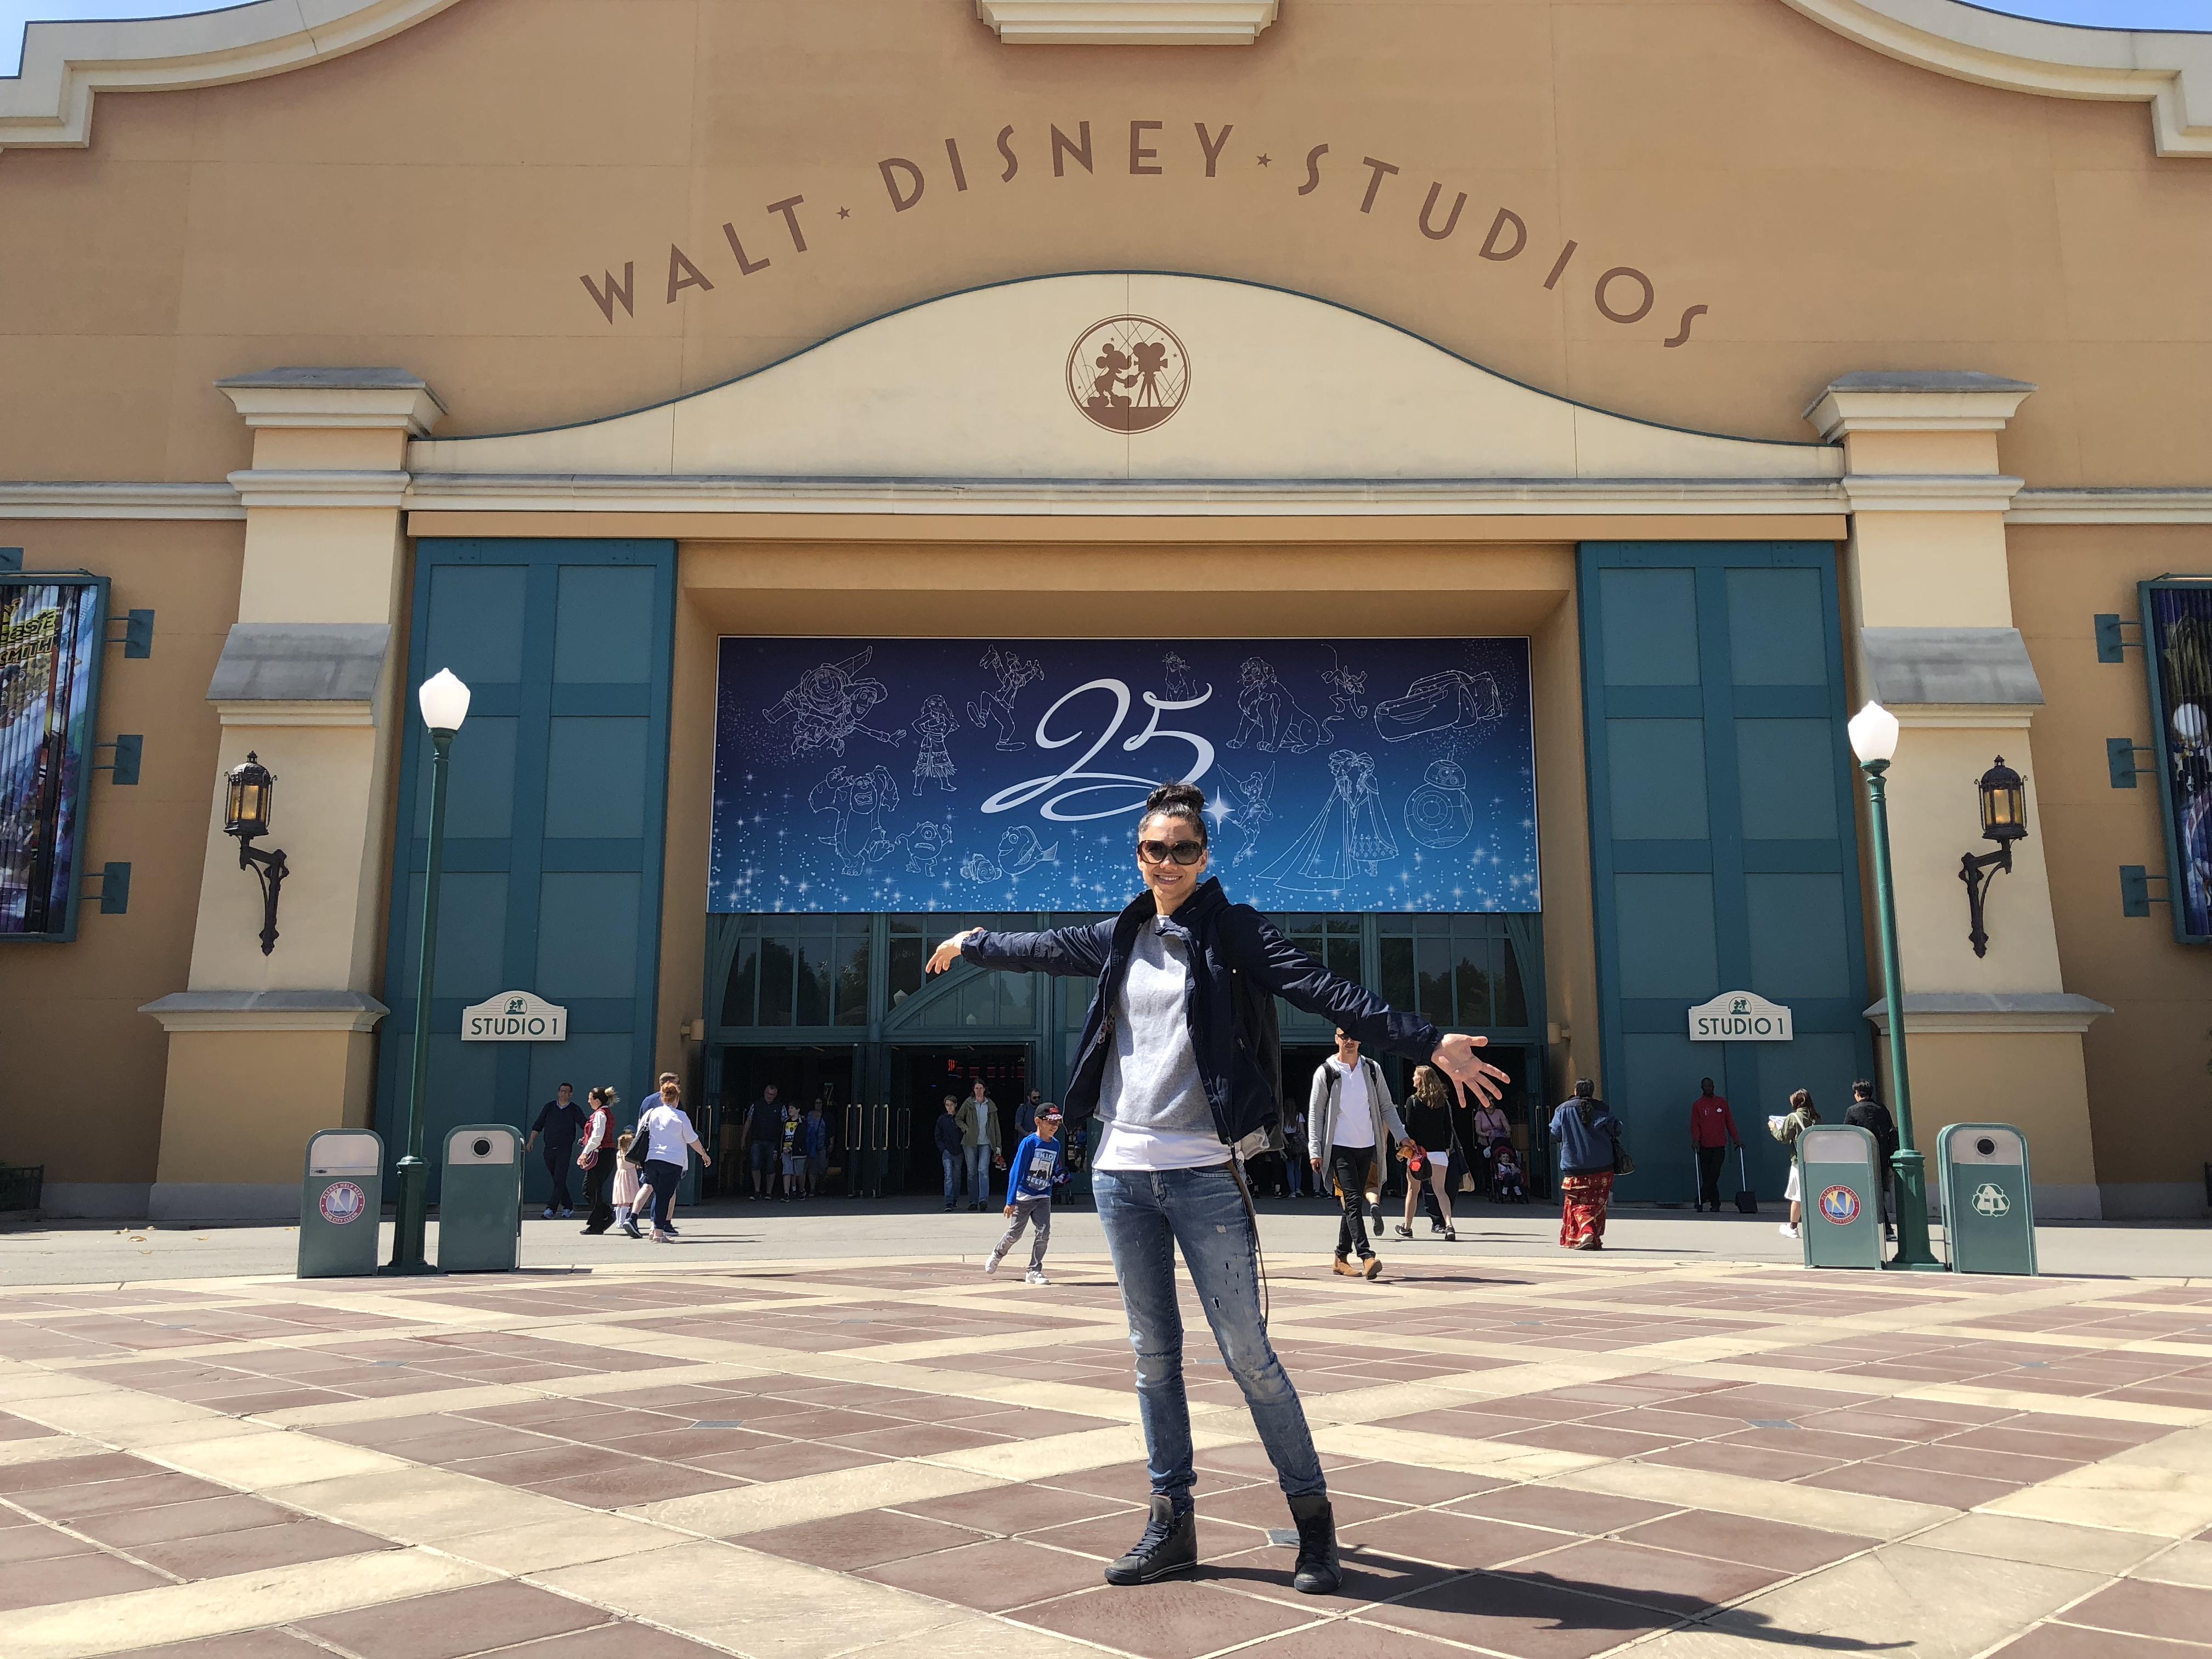 Walt Disney Studios Paris